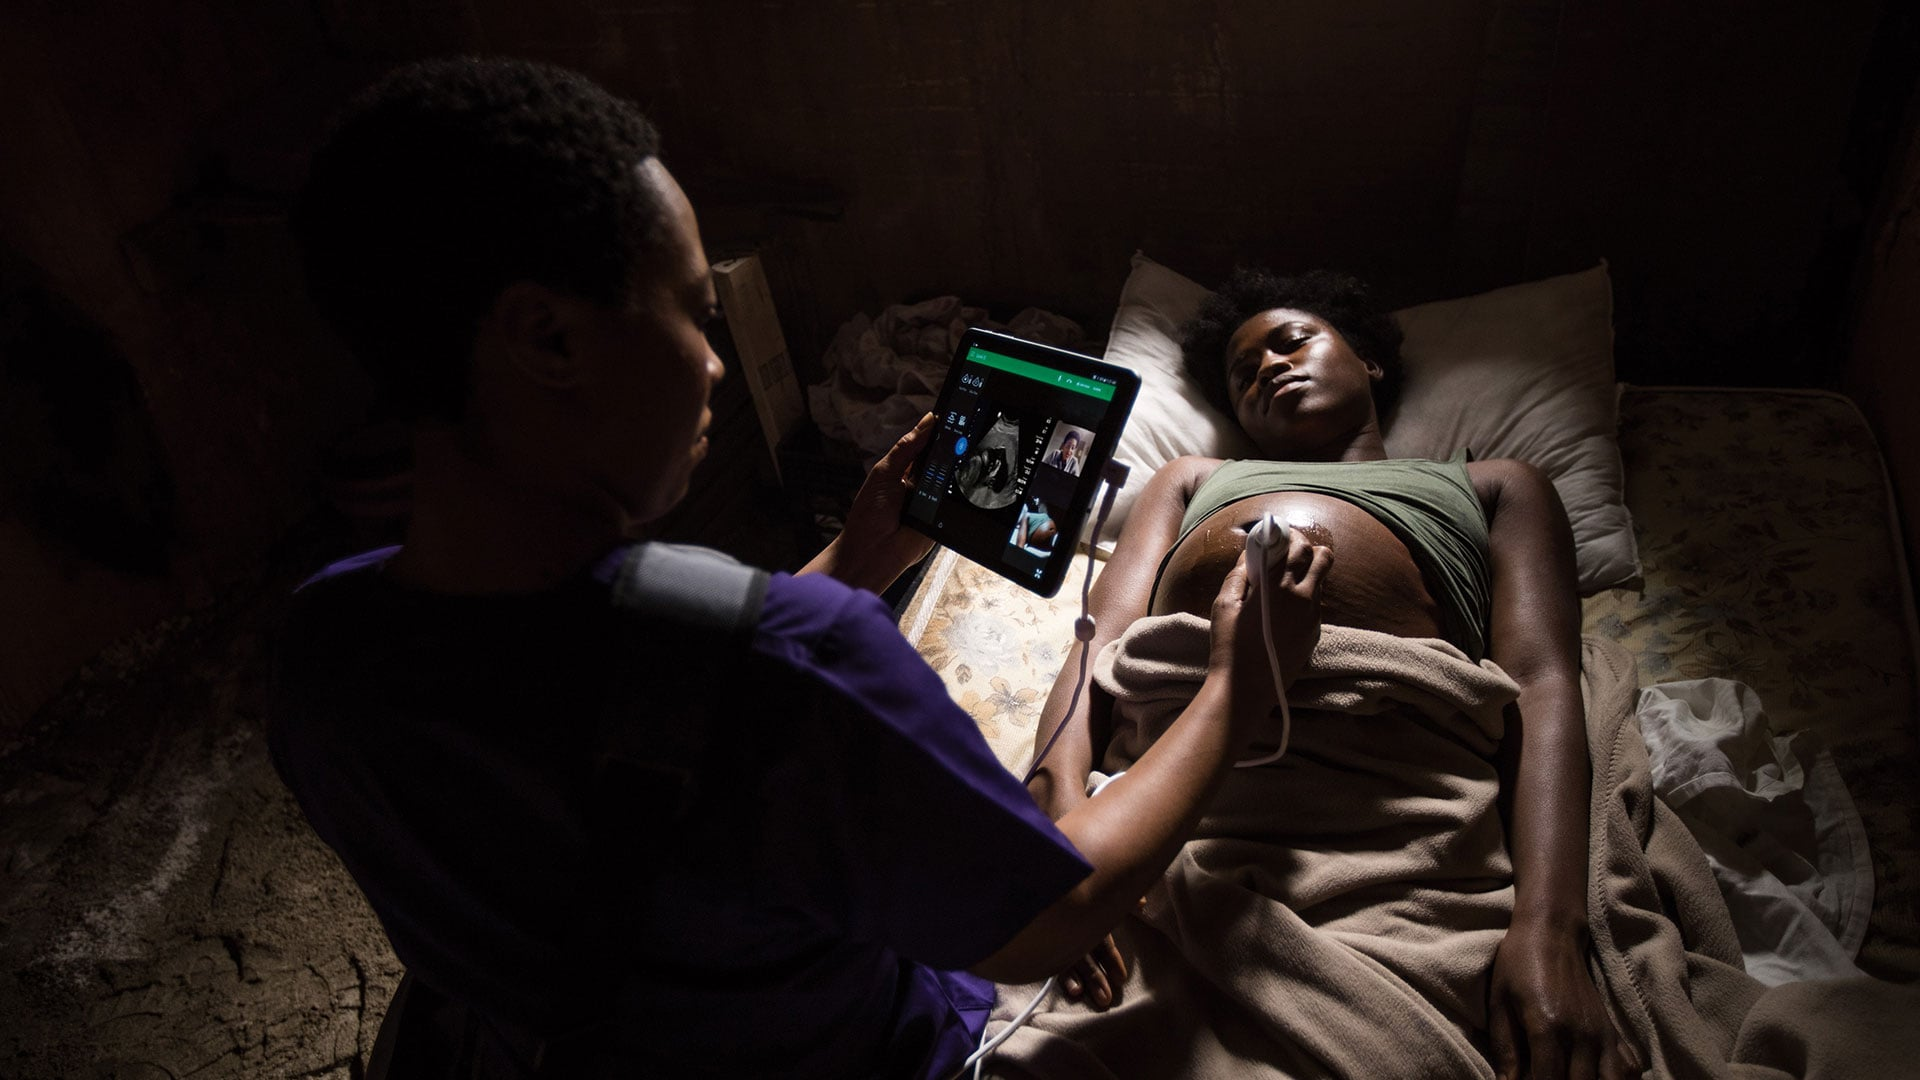 Improving maternal and child health through mobile ultrasound technology